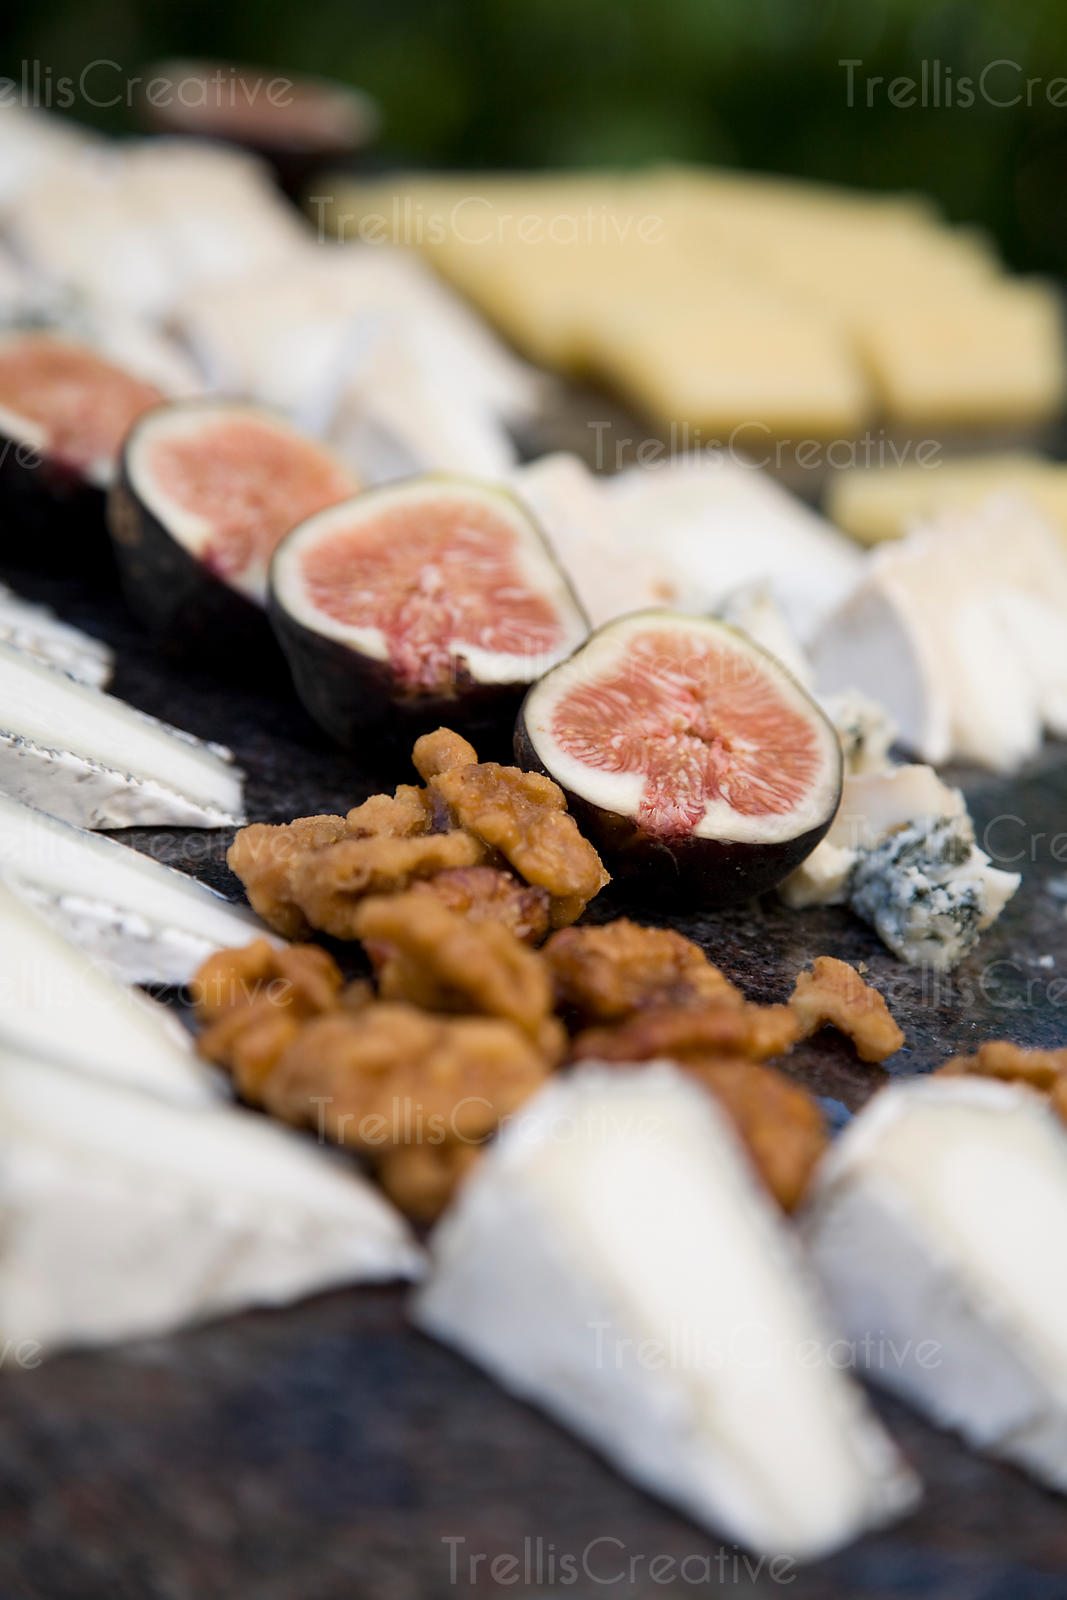 A platter of figs, nuts and cheese